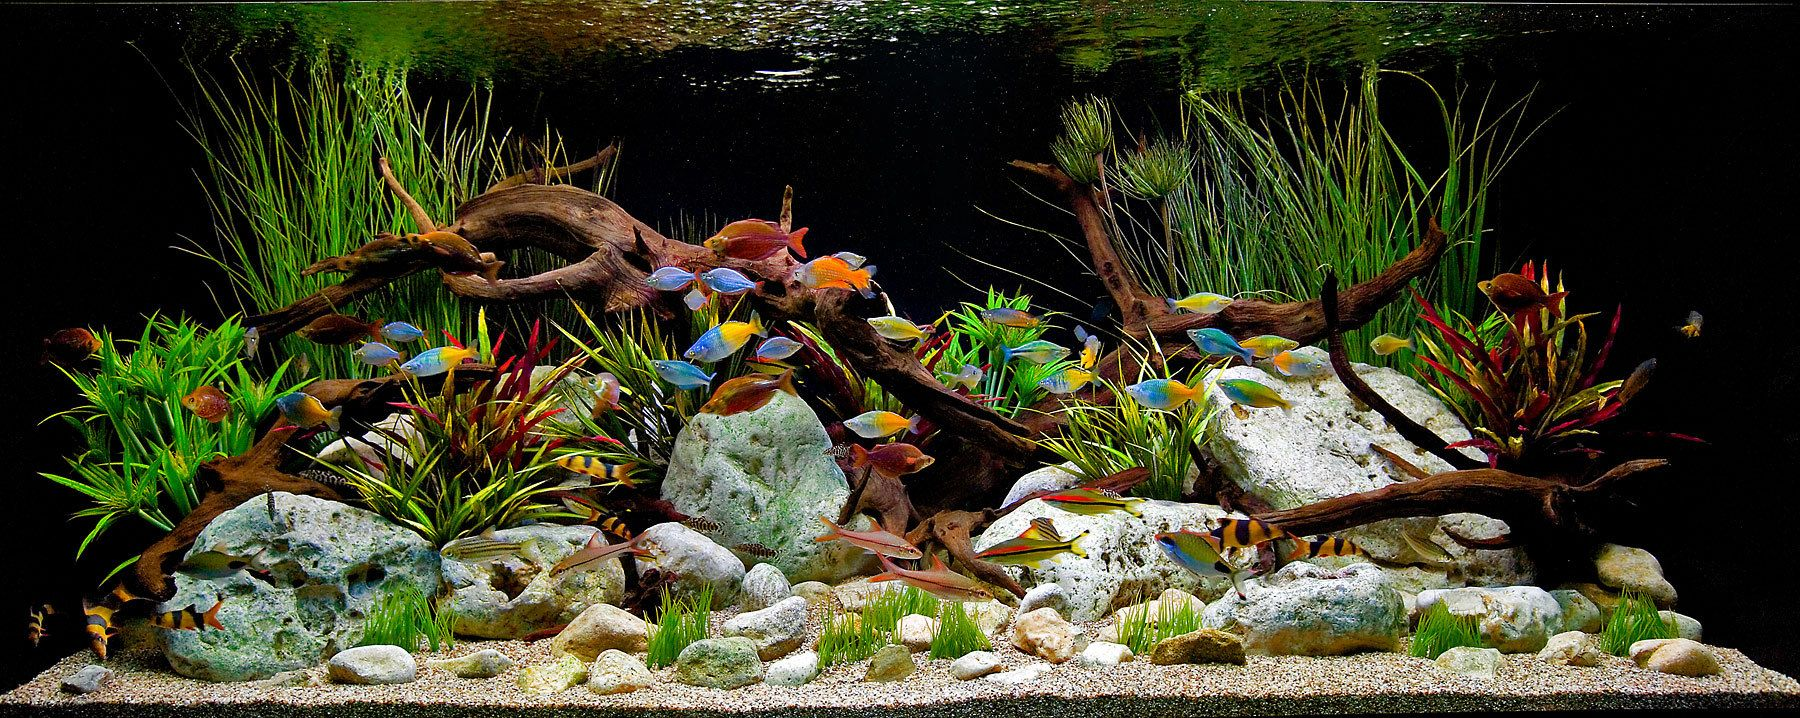 Perfect Aquarium Design Group   A Classic Decorative Freshwater Aquascape Witrh  Driftwood And Stones